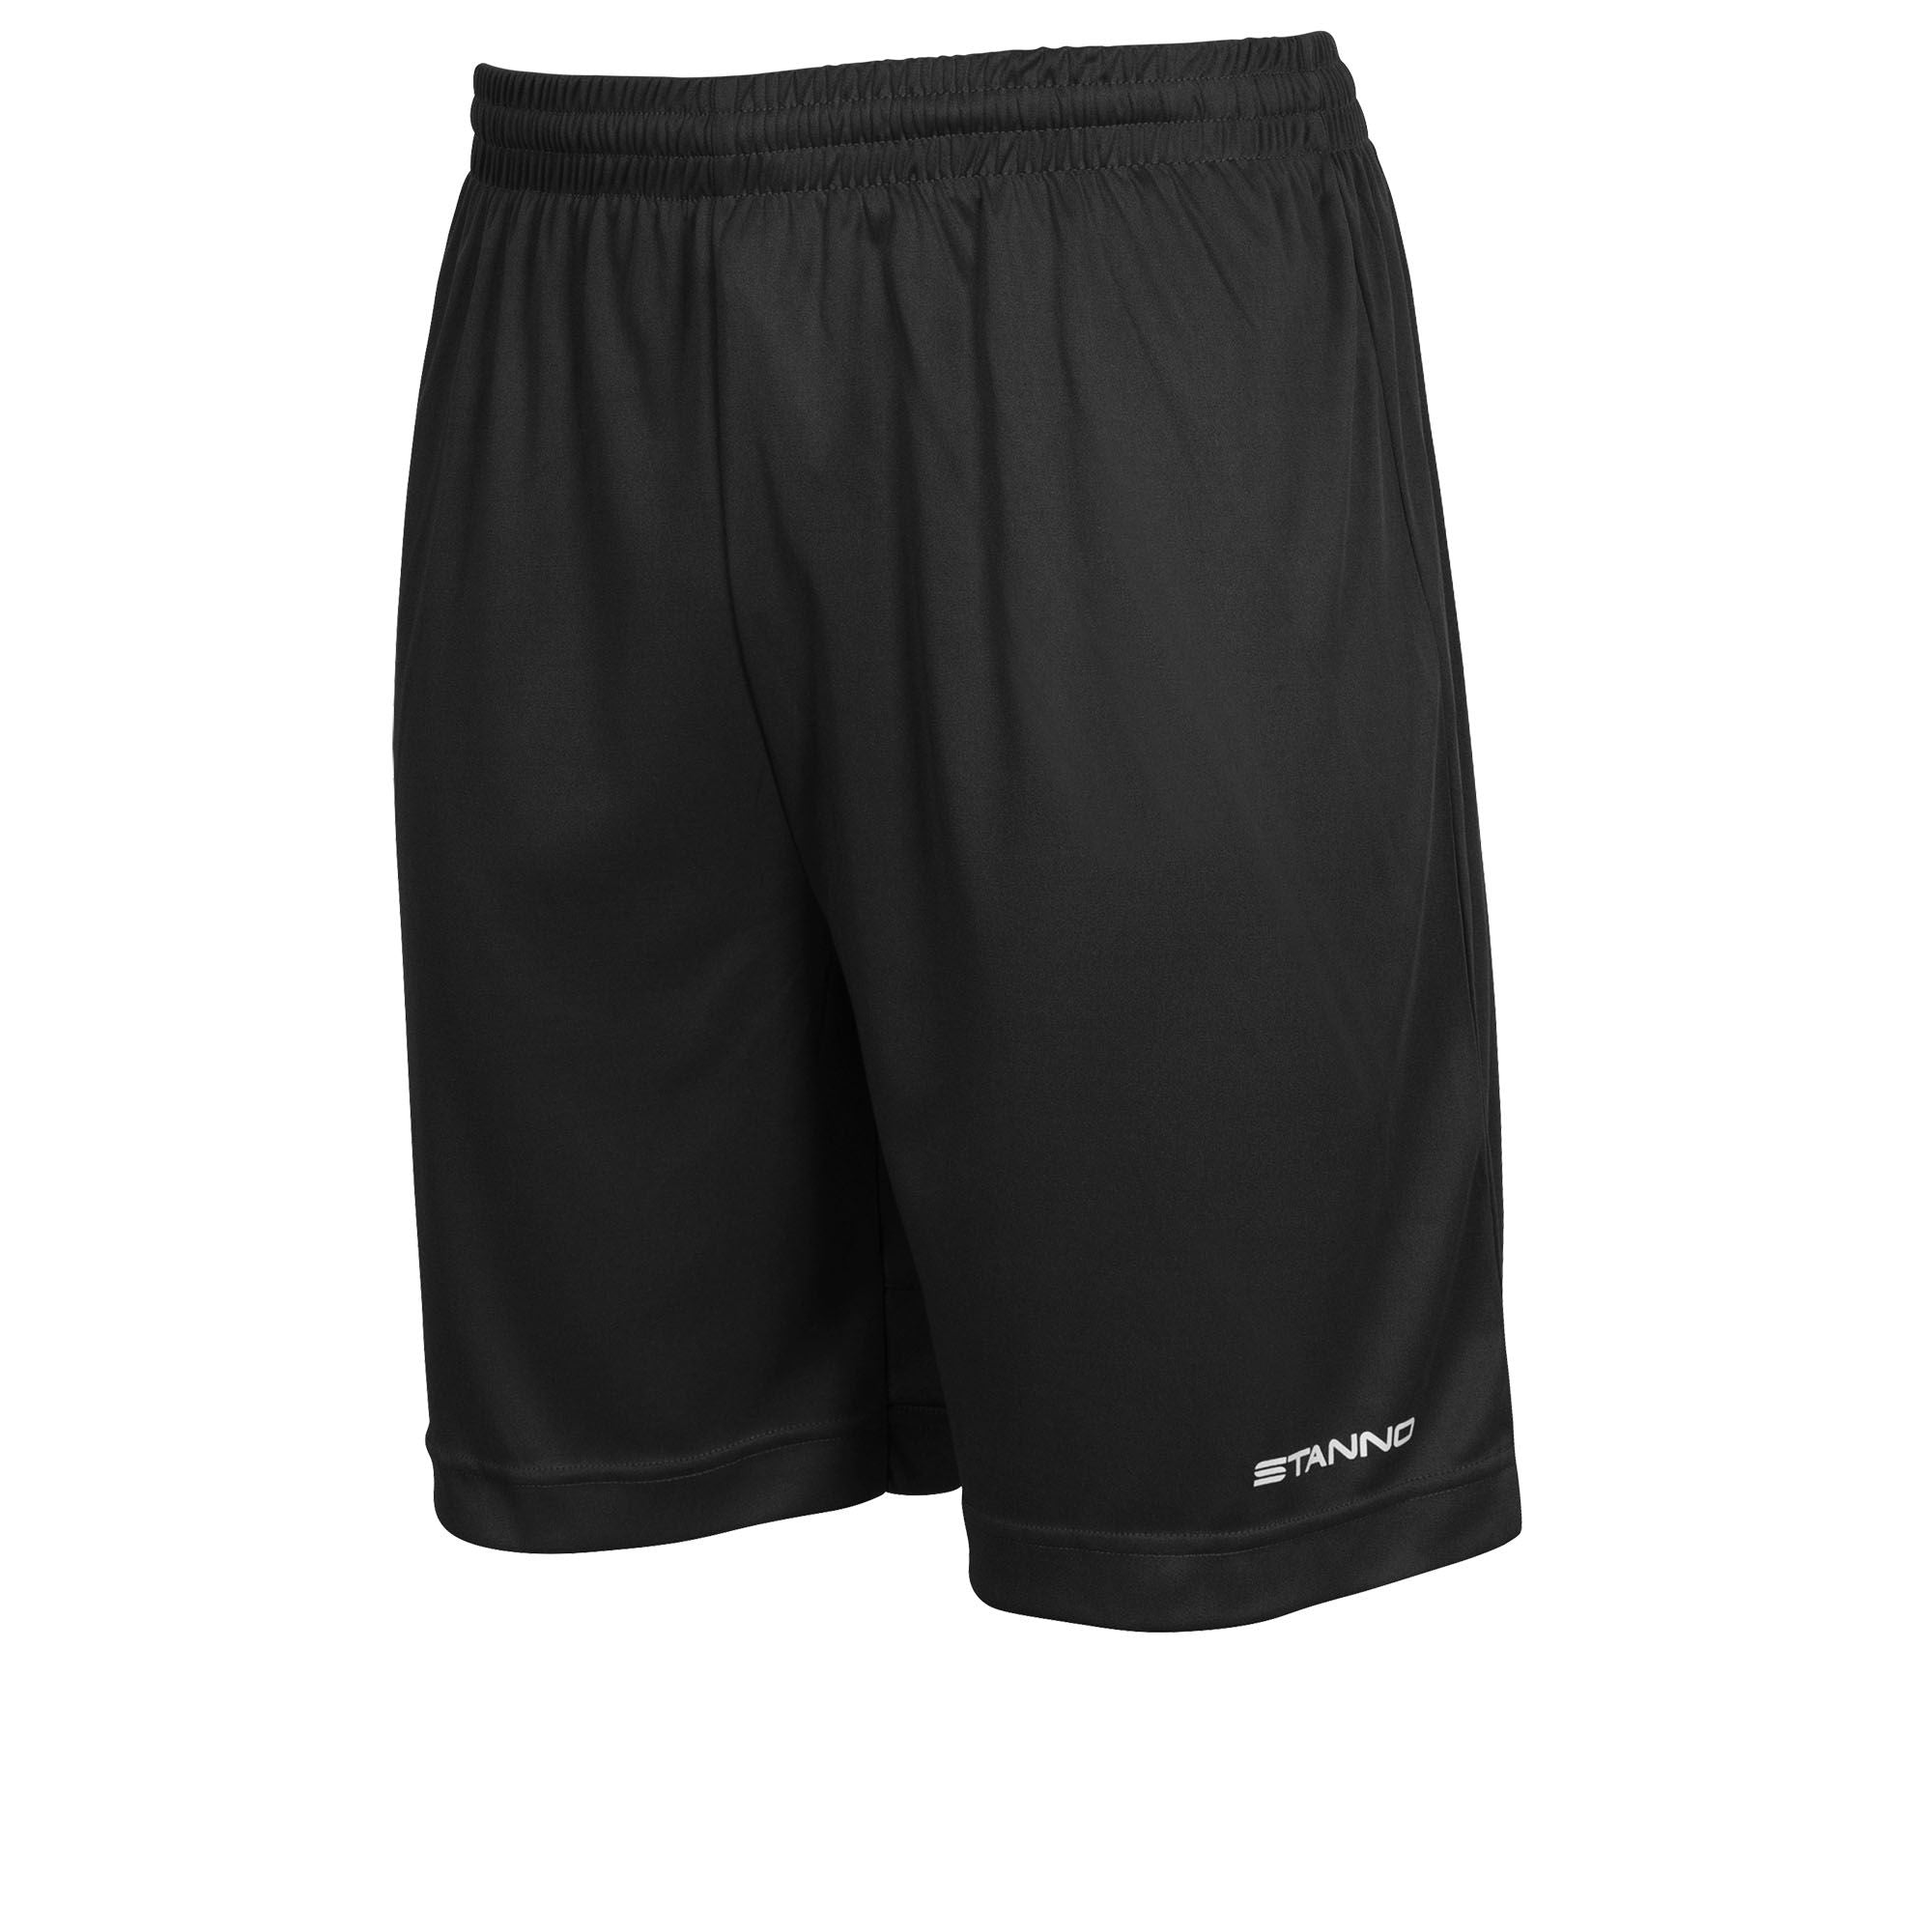 Stanno Field Shorts in black